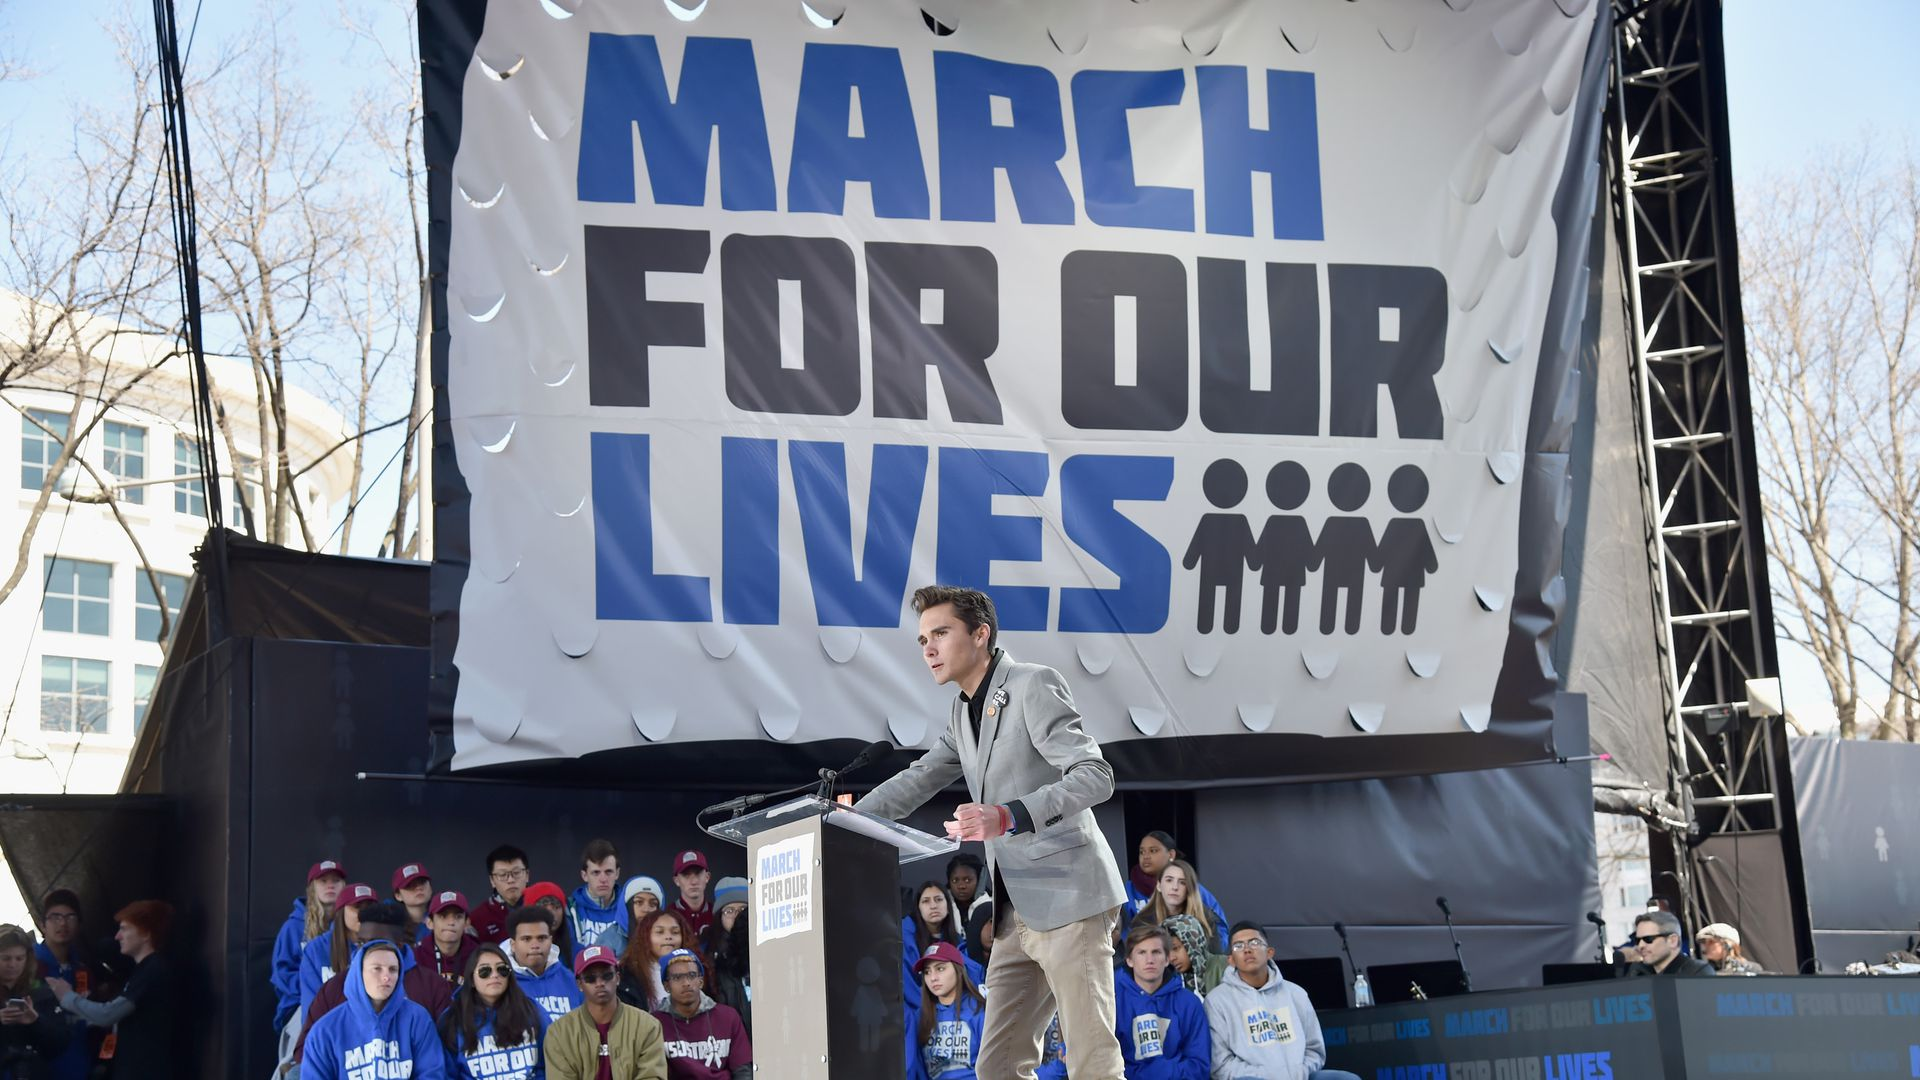 David Hogg speaks onstage at March for Our Lives in DC